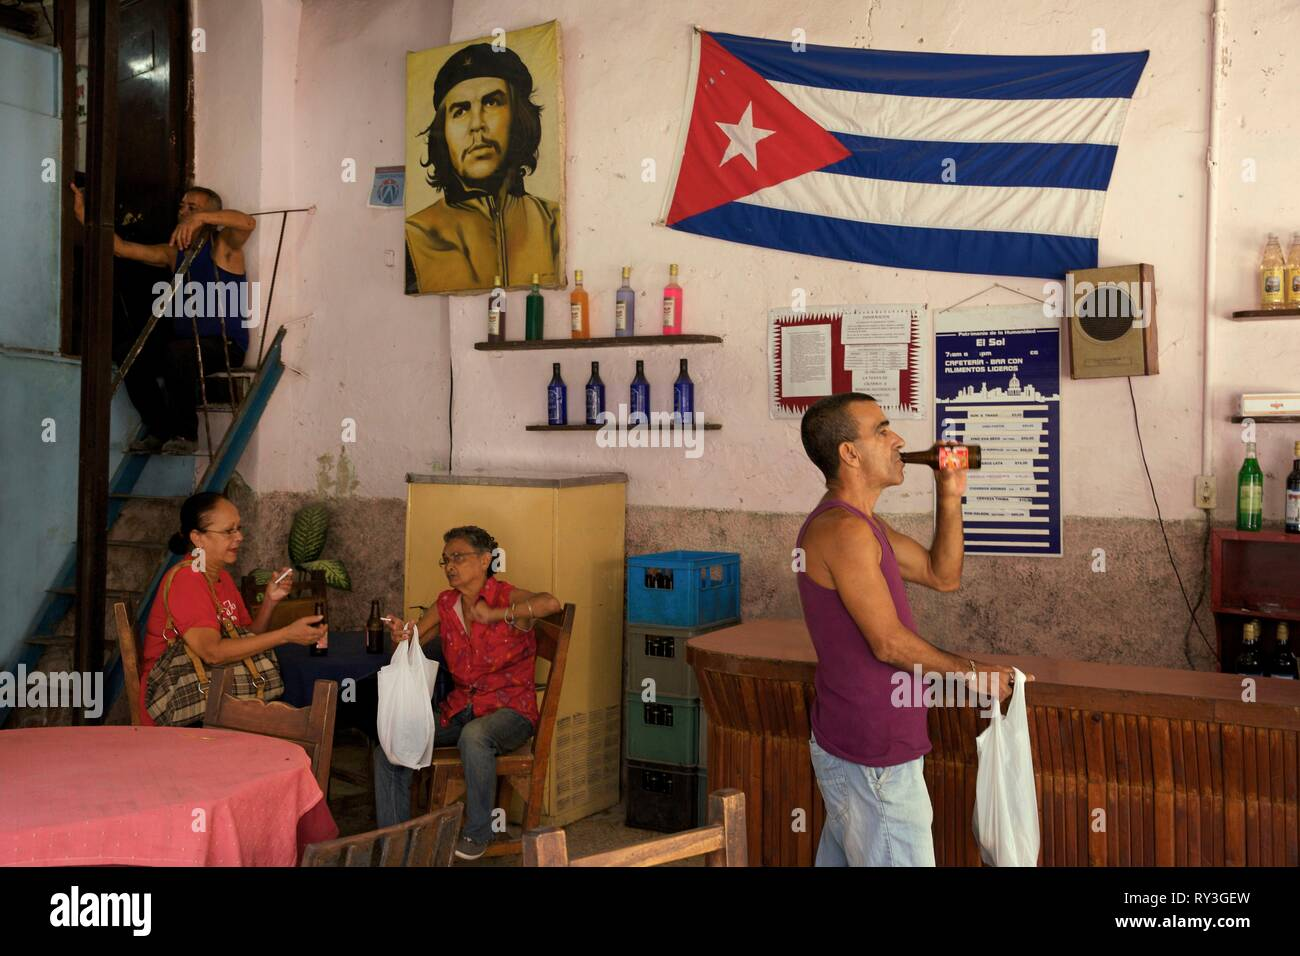 Cuba, La Havana, old Habana, listed as World Heritage by UNESCO, man drinking a beer and old women seated in a state bar decorated with a cuban flag and a portrait of Che Guevara - Stock Image